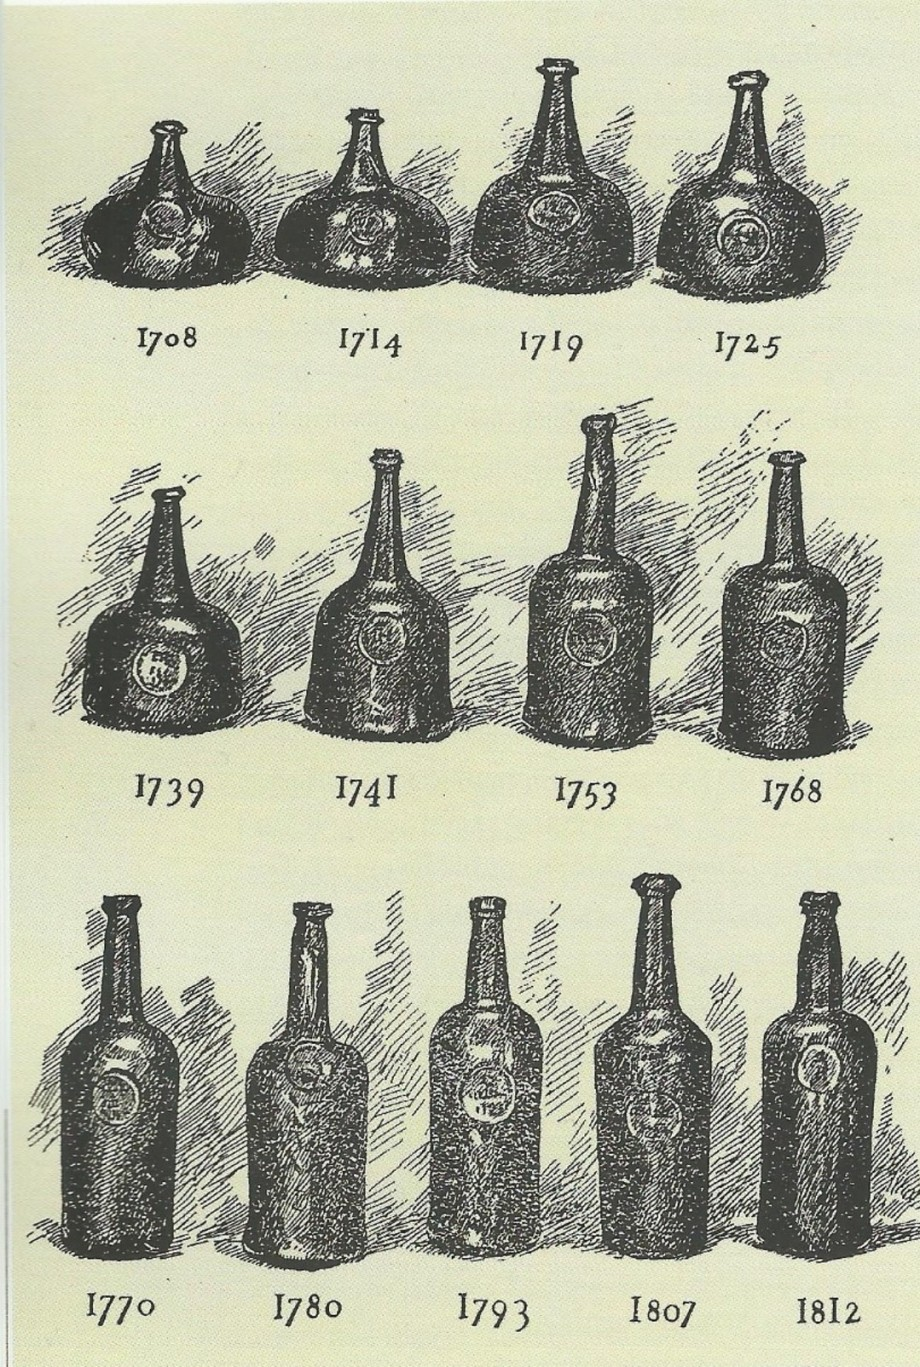 chrono_bottles